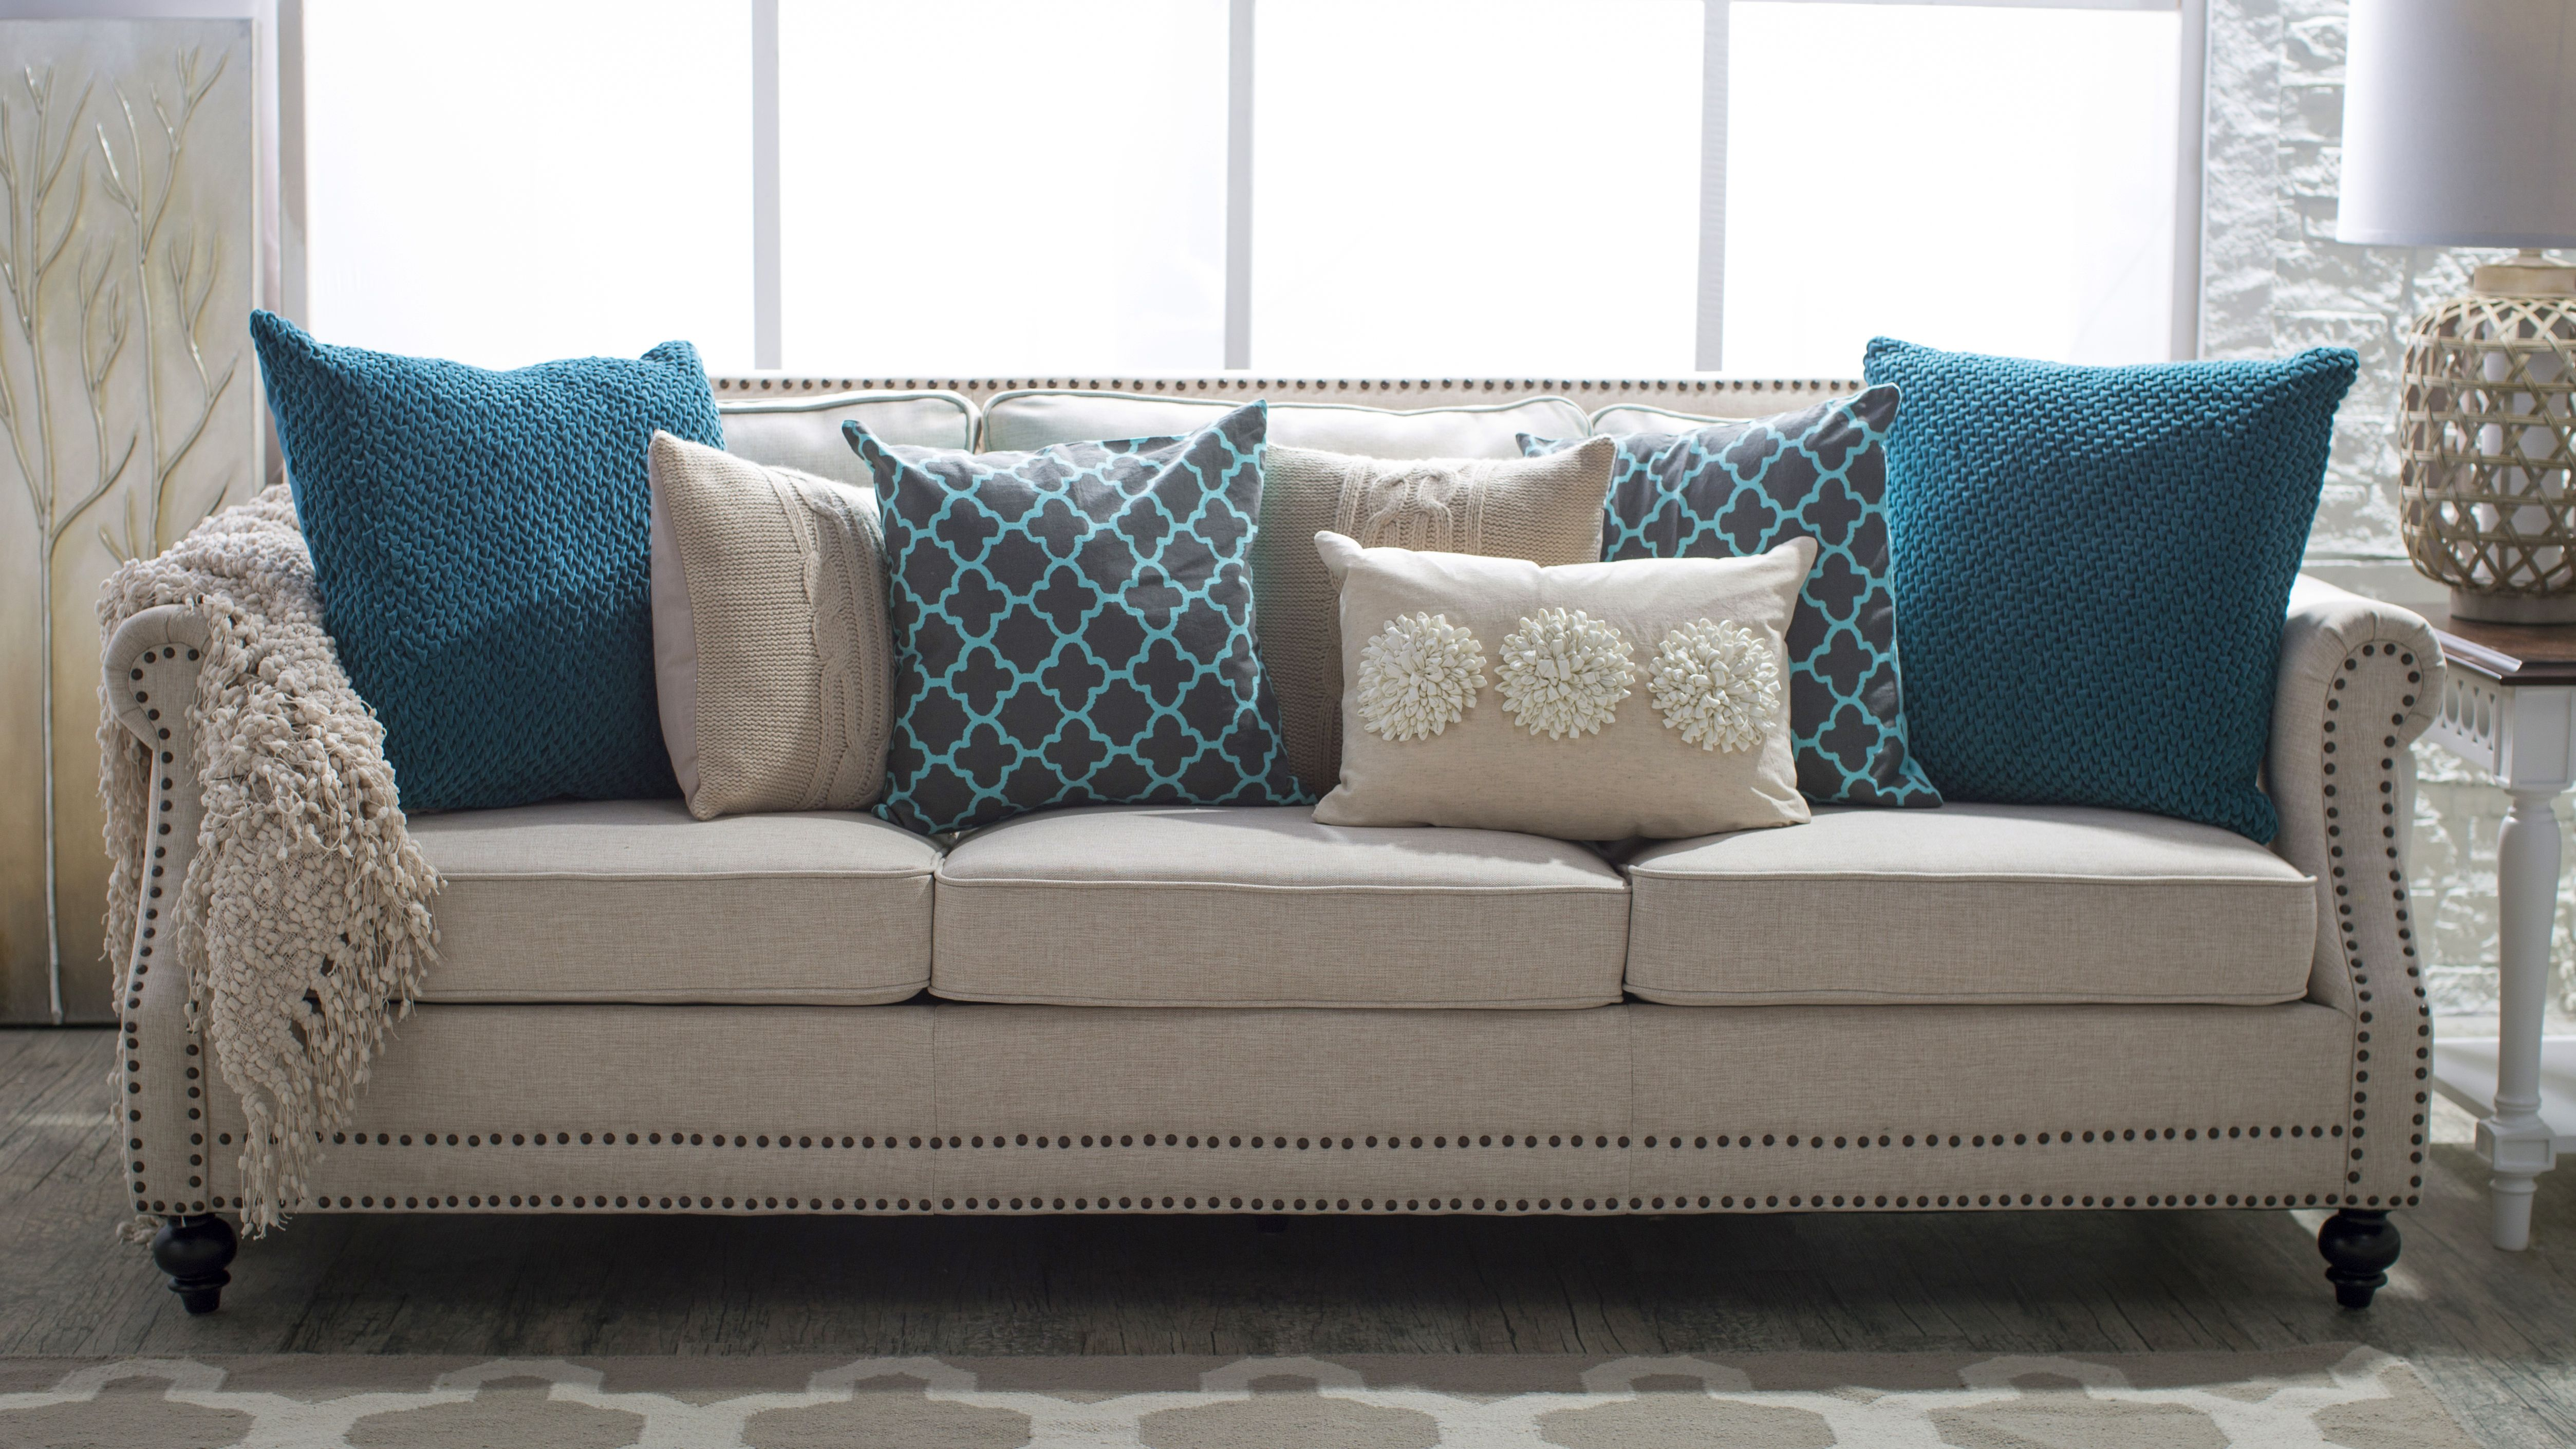 living room decorative pillows decor with black leather couch teal and cream throw home pinterest